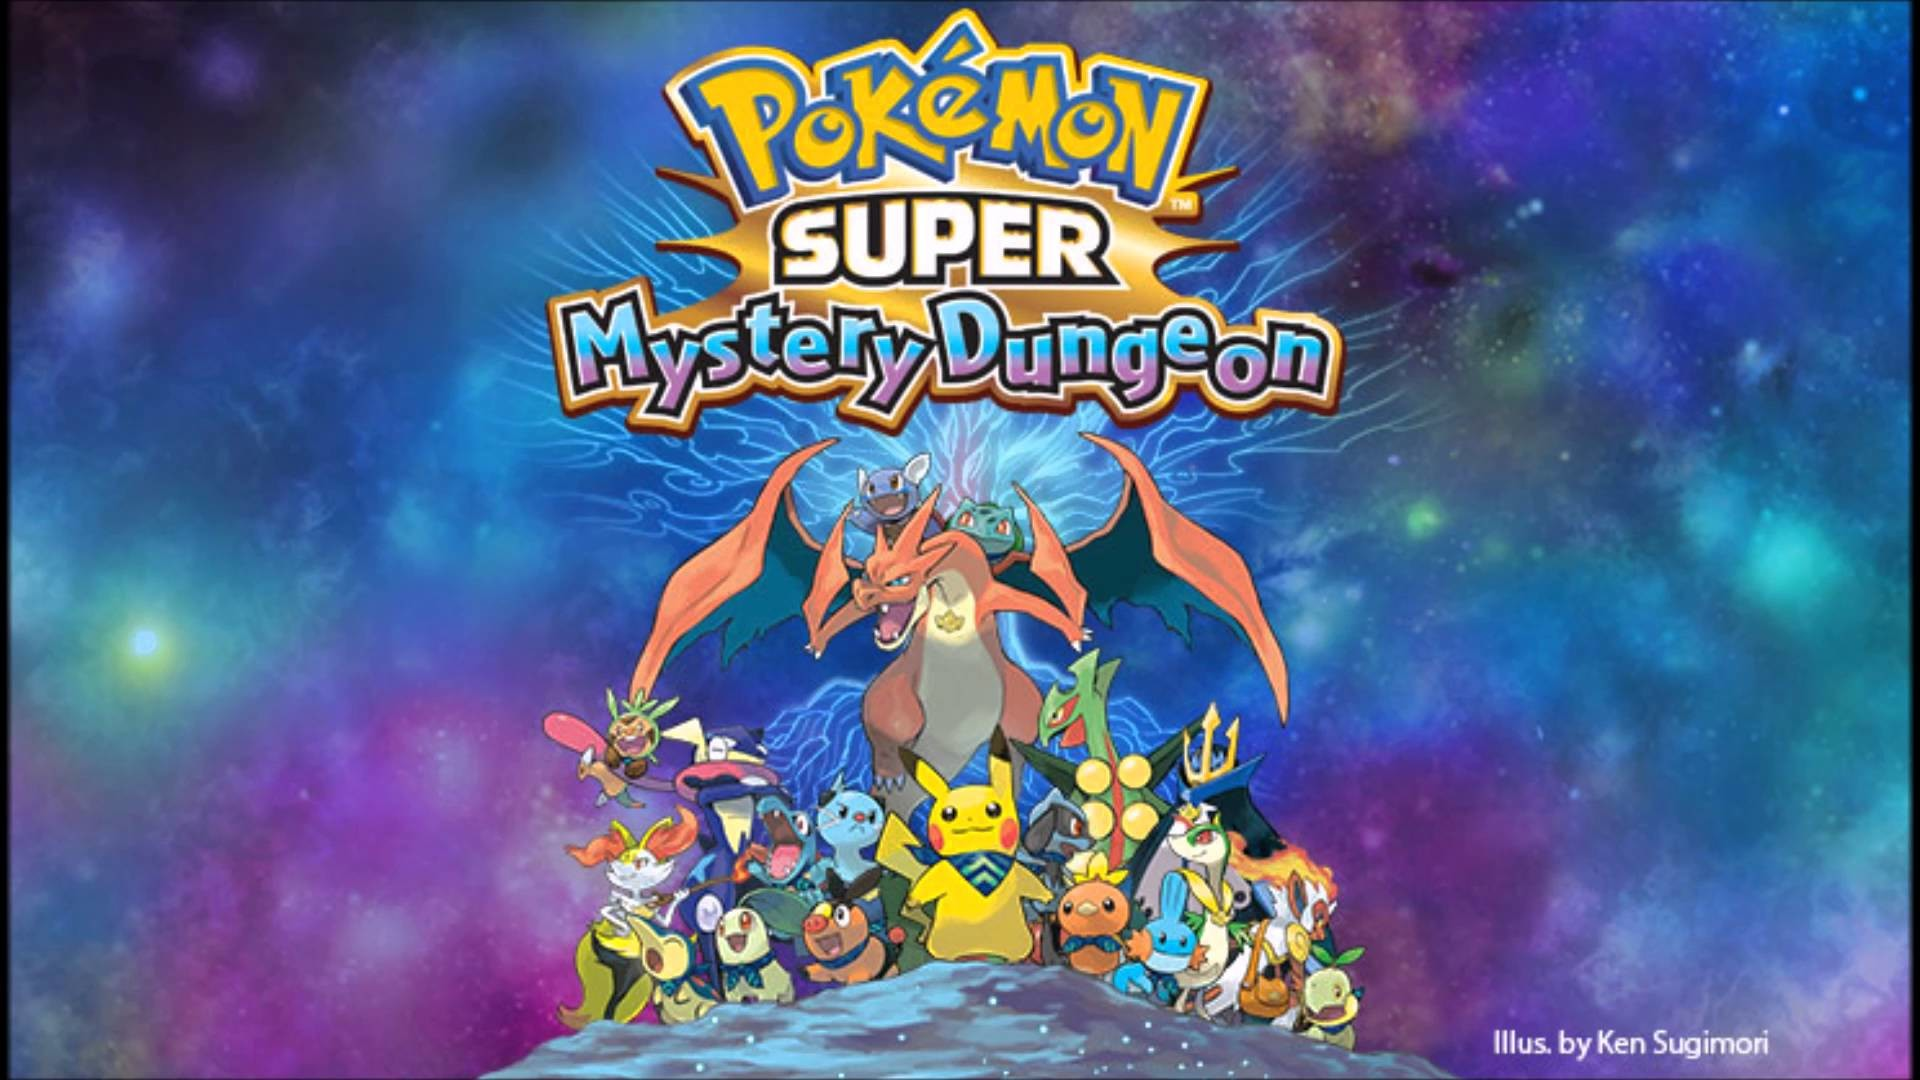 Pokemon Super Mystery Dungeon- The Coming Danger